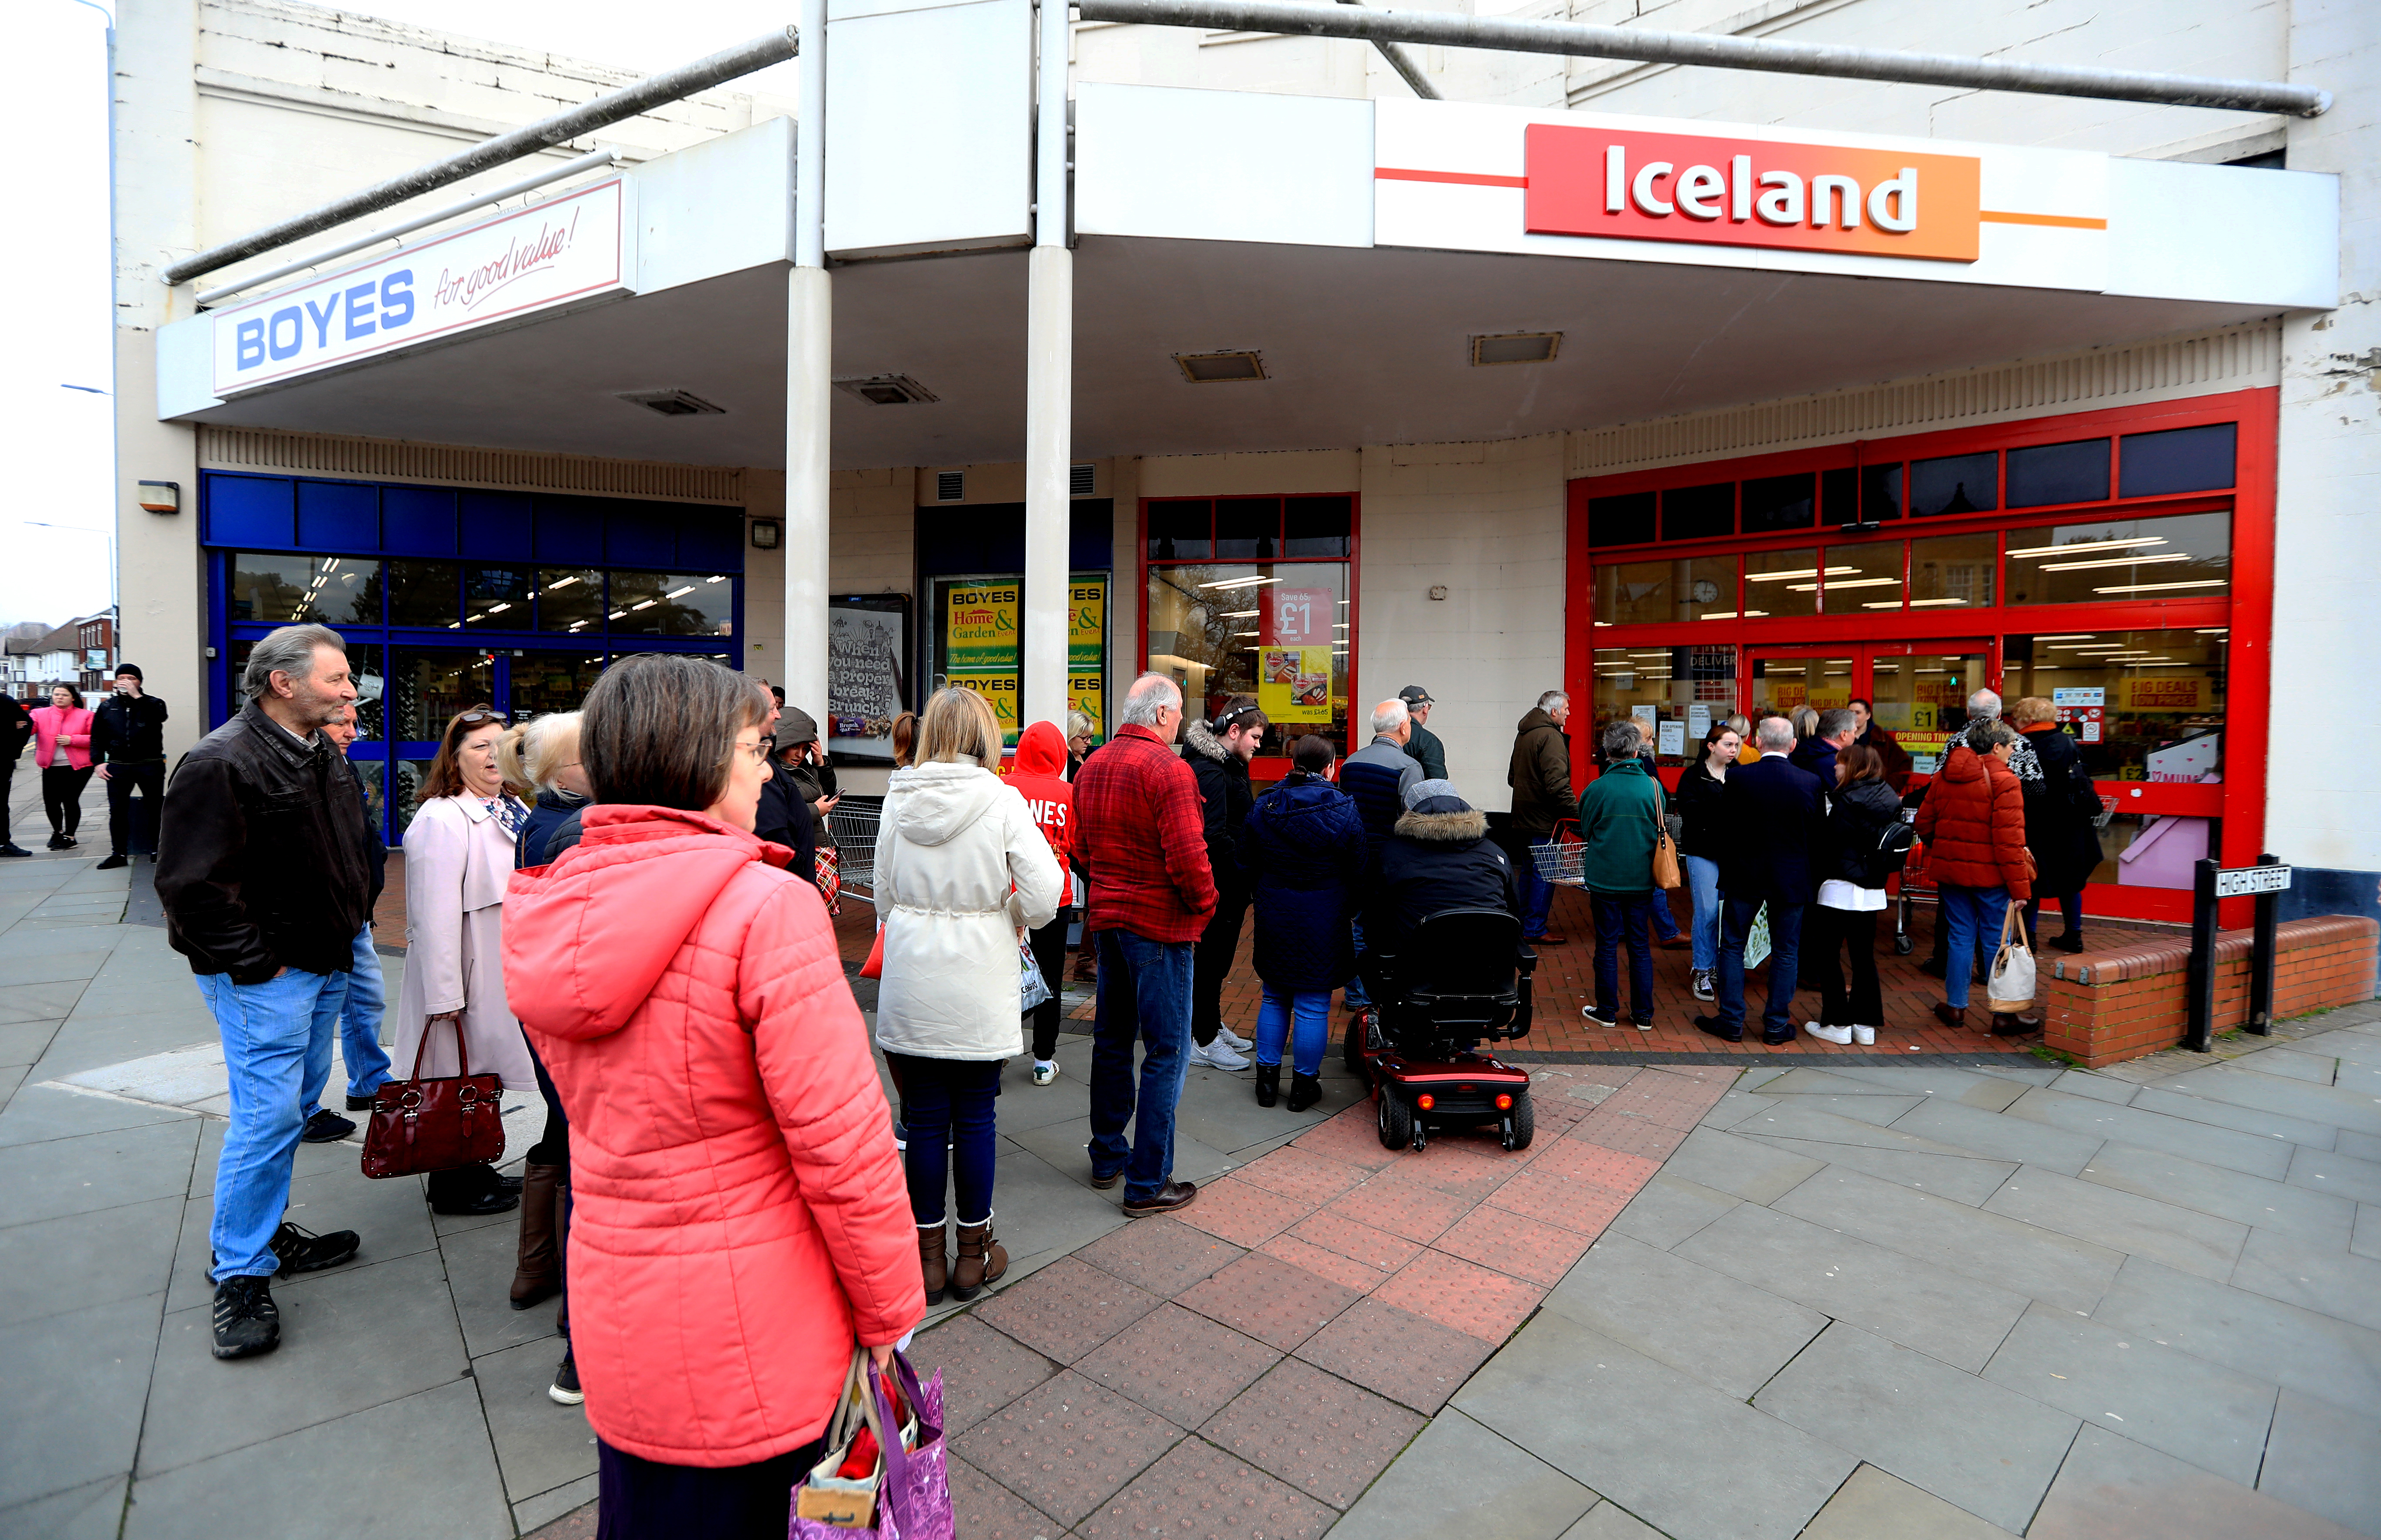 People are seen queueing up outside an Iceland at Melton Mowbray Market after NHS England announced that the coronavirus death toll had reached 104 in the UK.